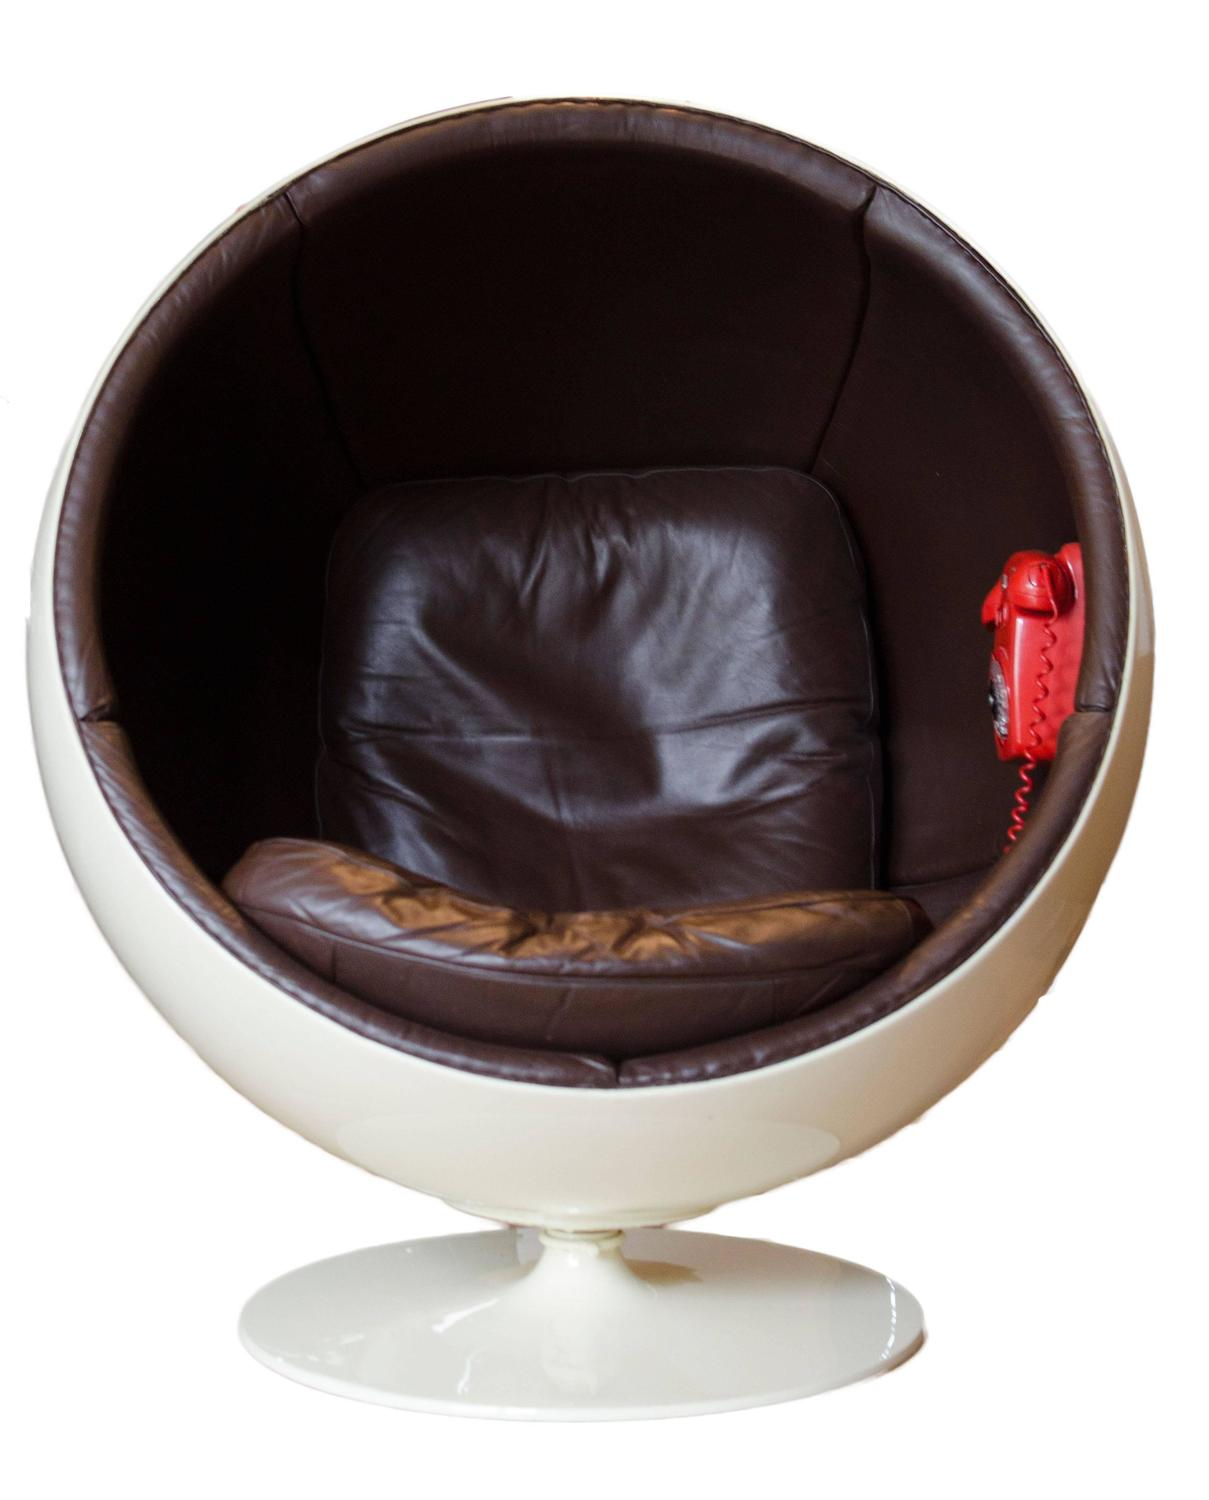 Extremely rare ball chair by eero aarnio made by asko with phone for sale - Fauteuil ballon eero aarnio ...